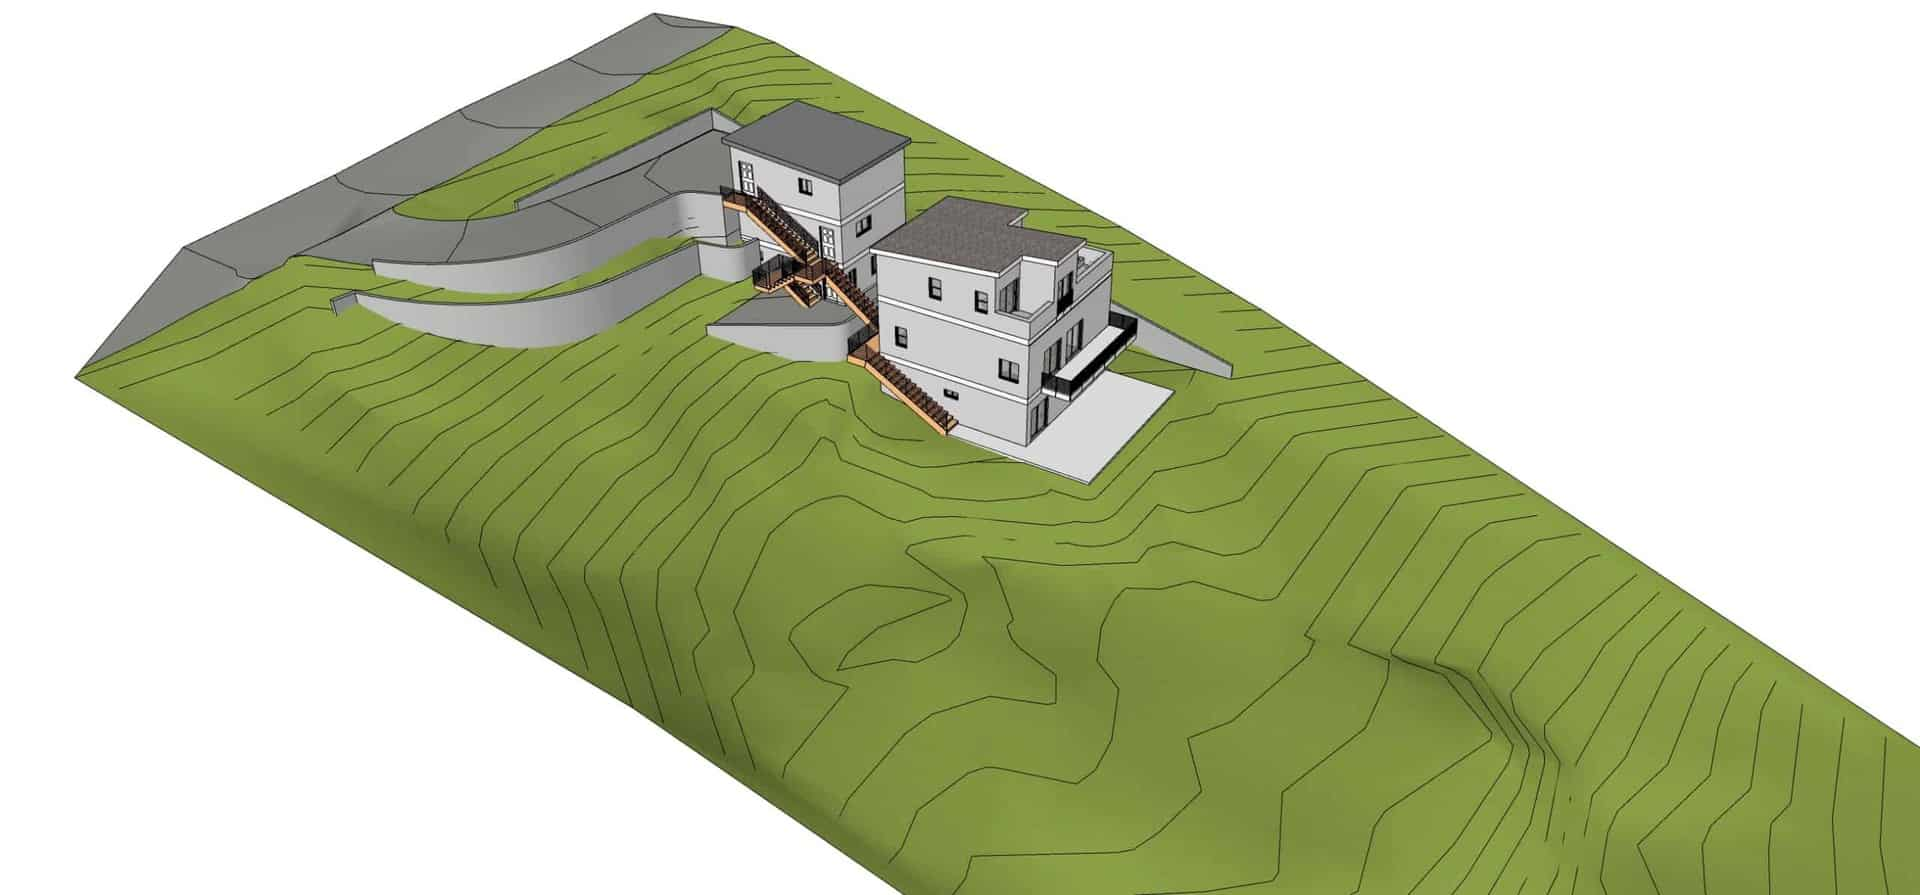 Topography sketchup 3d